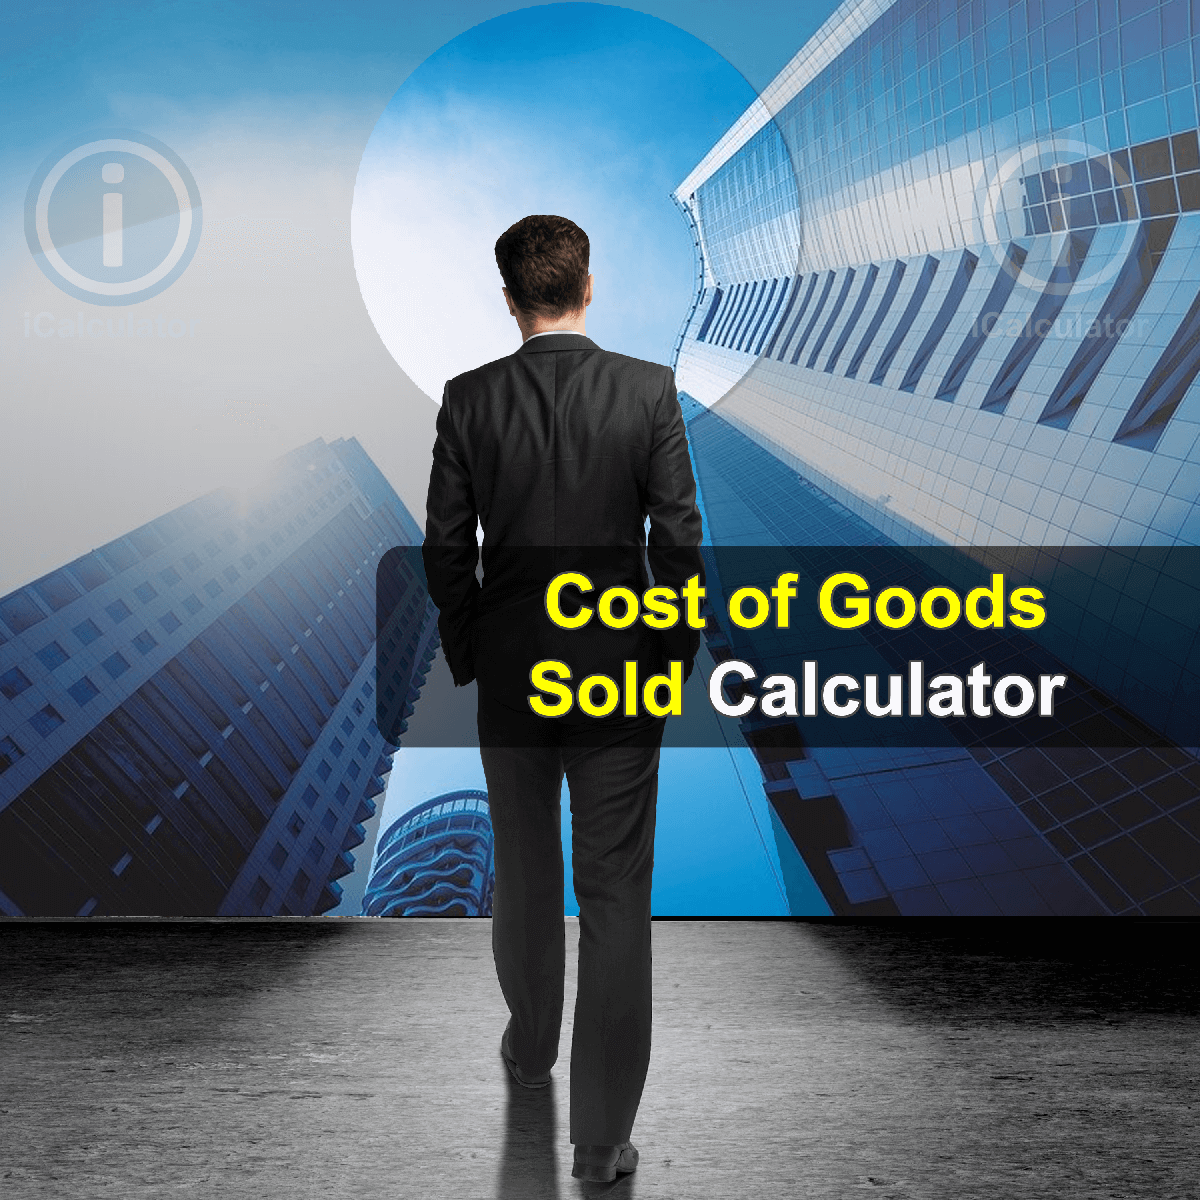 Cost of Goods Sold Calculator. This image provides details of how to calculate the Cost of Goods Sold using a calculator and notepad. By using the Cost of Goods Sold formula, the Cost of Goods Sold Calculator provides a true calculation of the cost that occurs in production and the cost of labor and any other cost that has a direct relation to the production of goods.